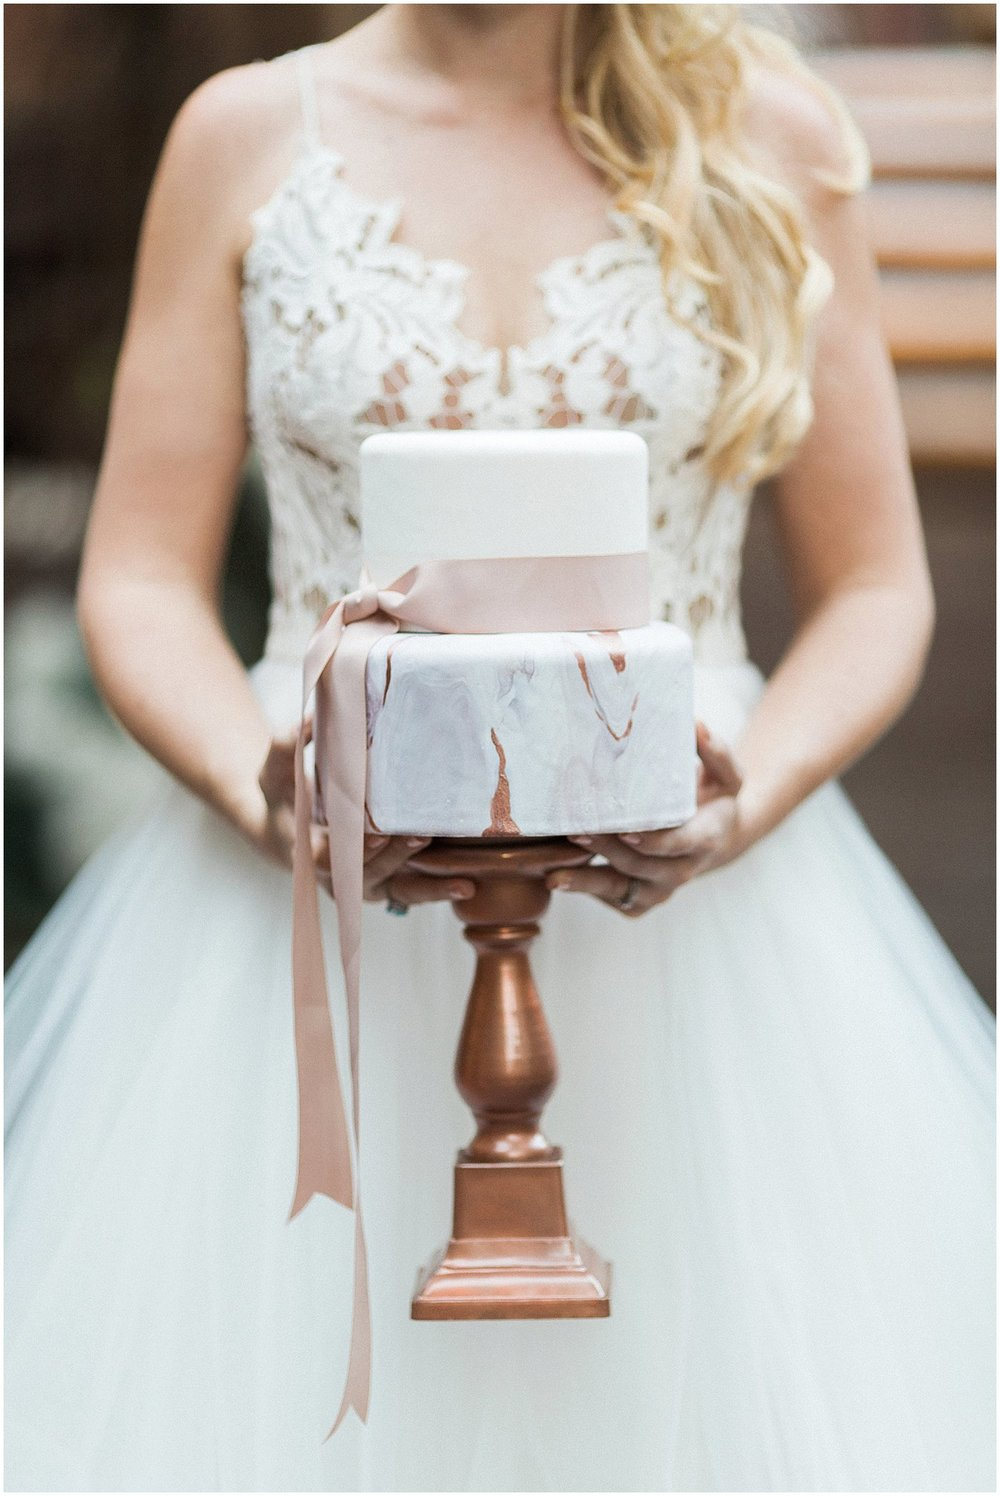 Blush & Rose Gold Marbled Wedding Cake by Laura Maries Cakes featured on Style Me Pretty | Phoenix Wedding Planner | Megan Dileen Events